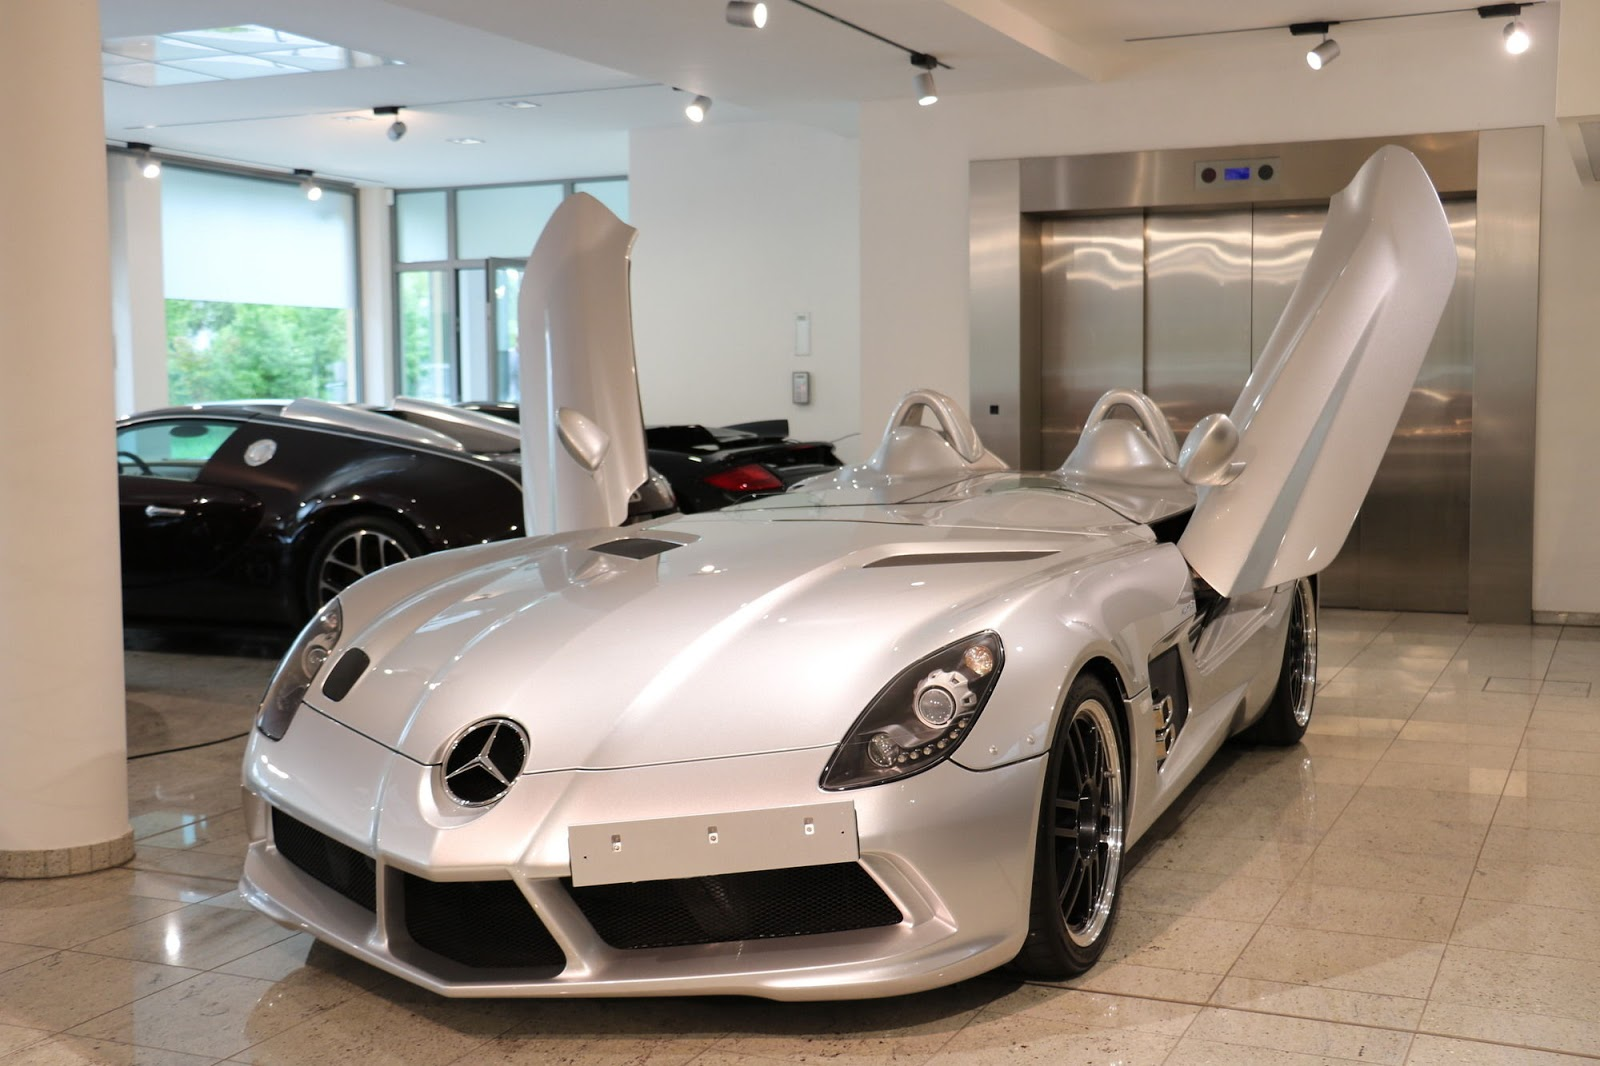 Mercedes-Benz SLR Stirling Moss for sale (1)